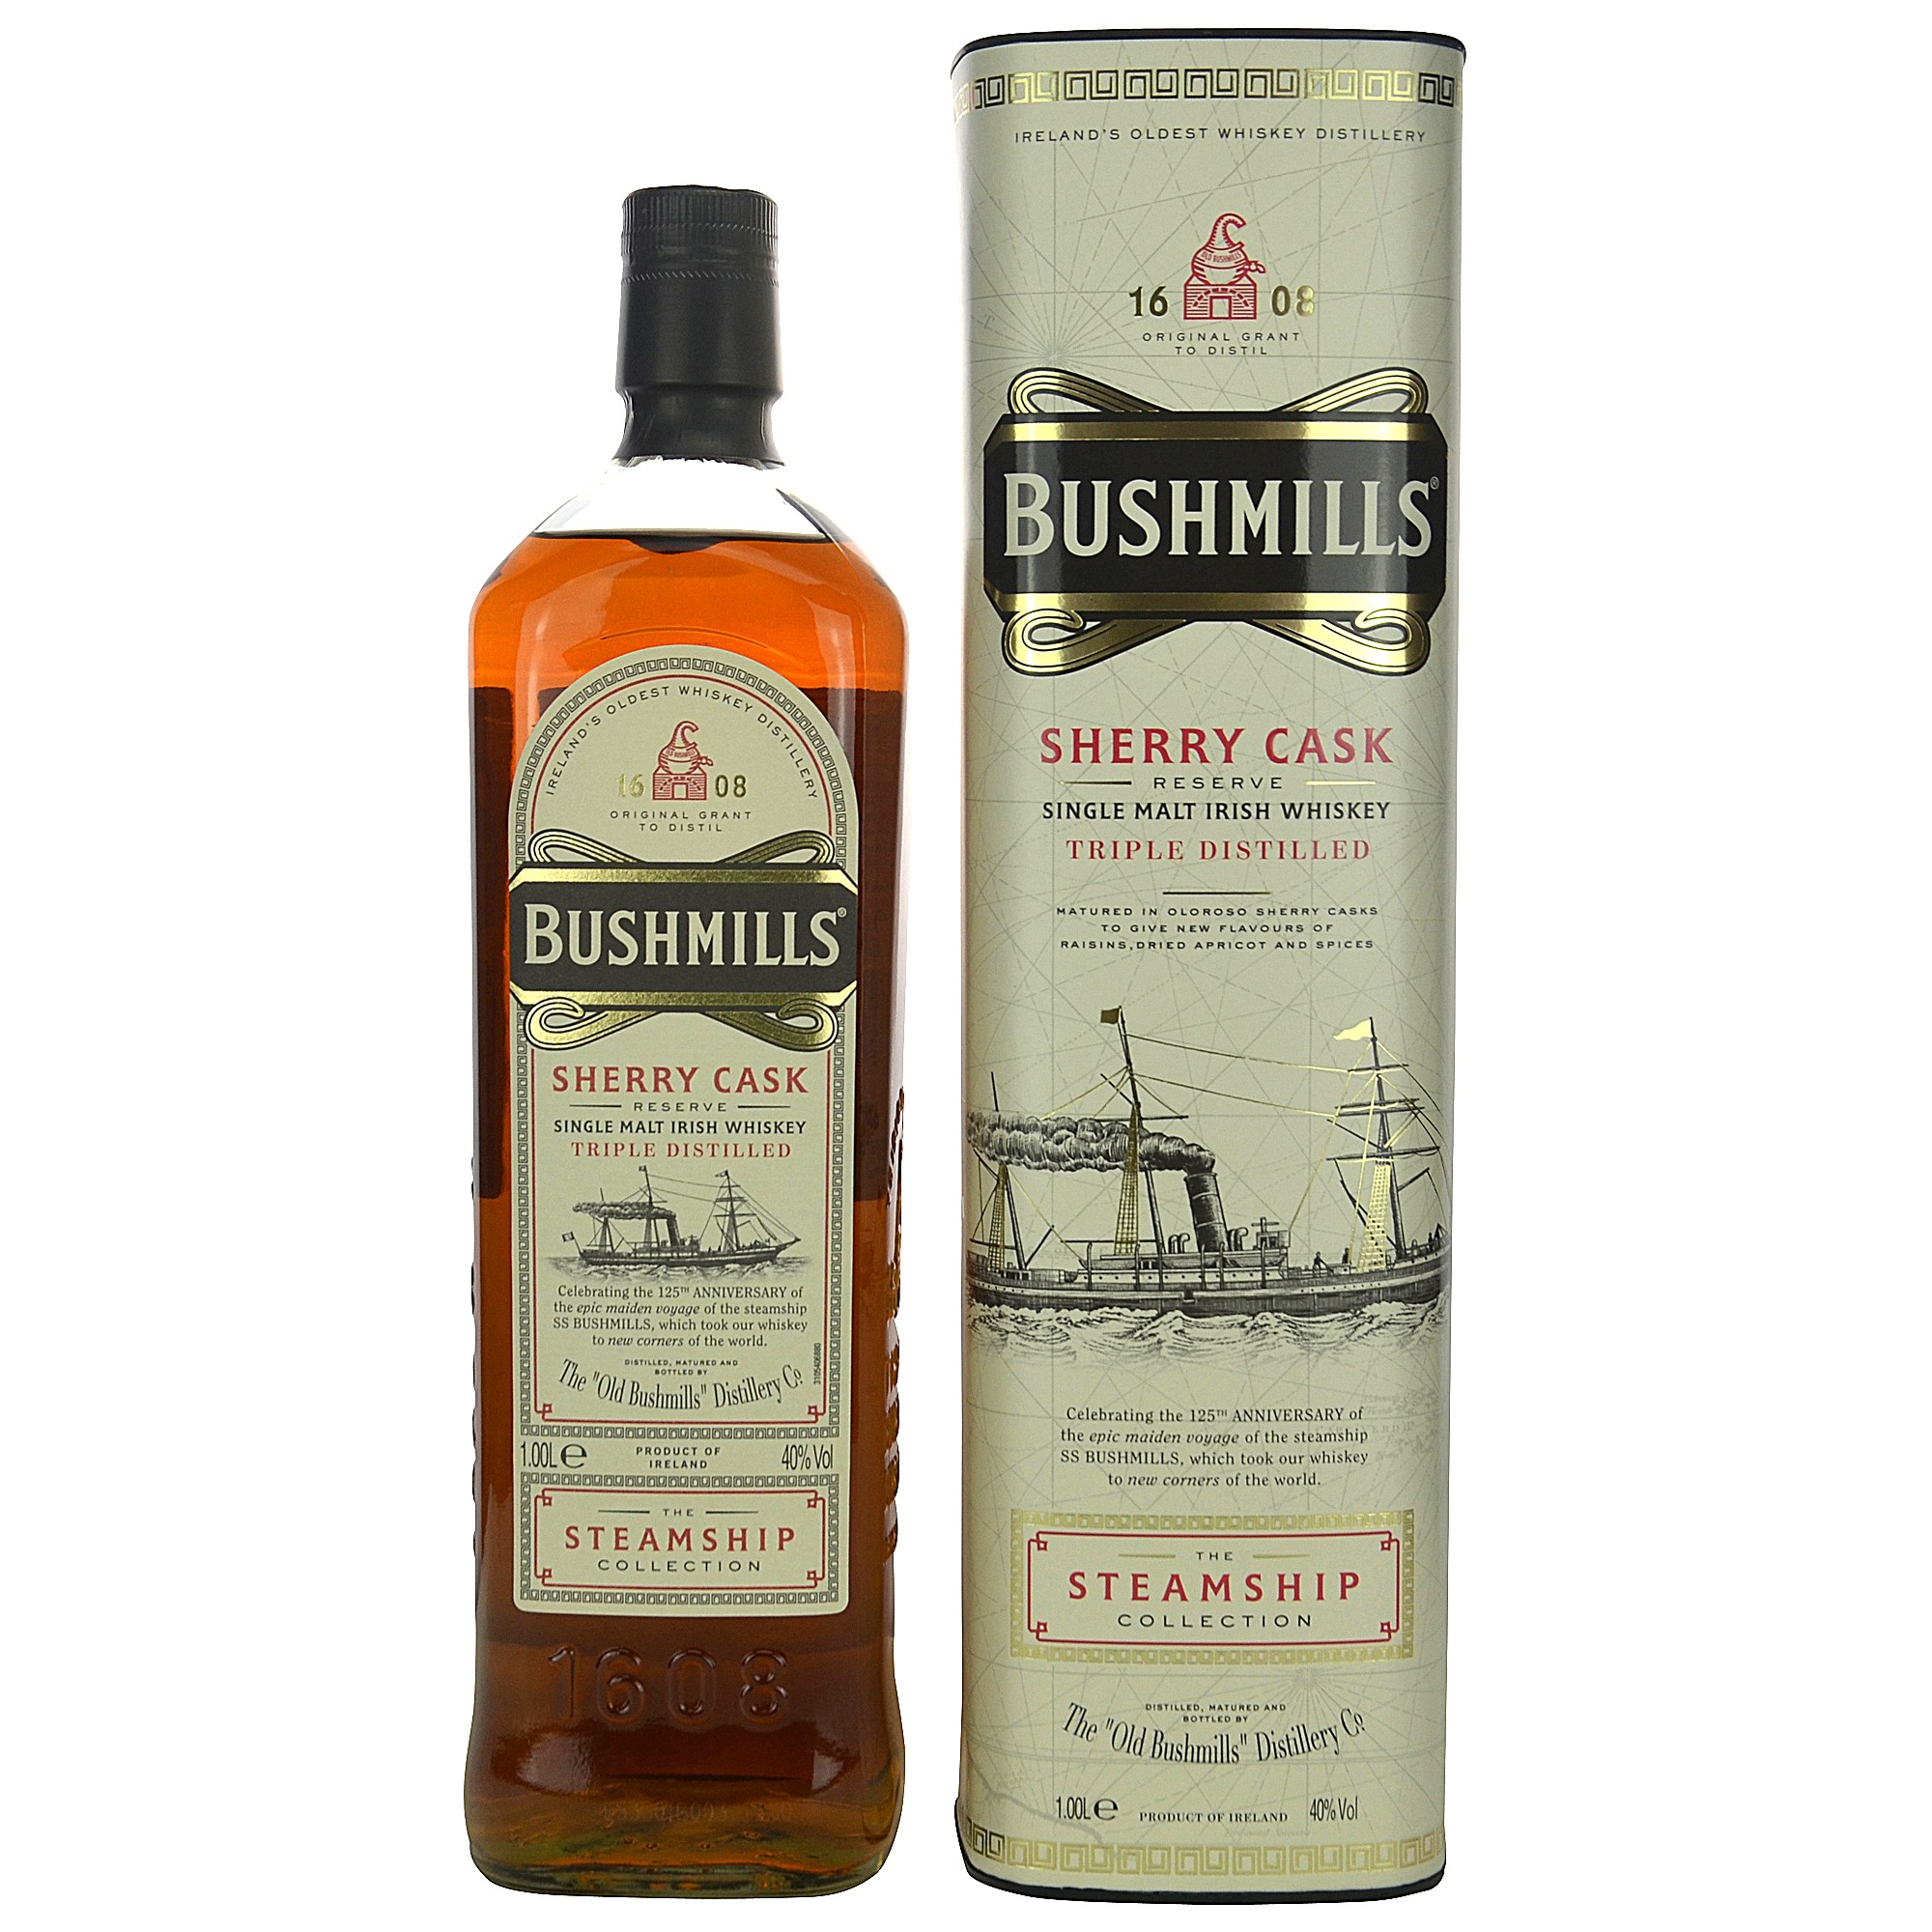 Bushmills Sherry Cask The Steamship Collection (Liter) (Irland)